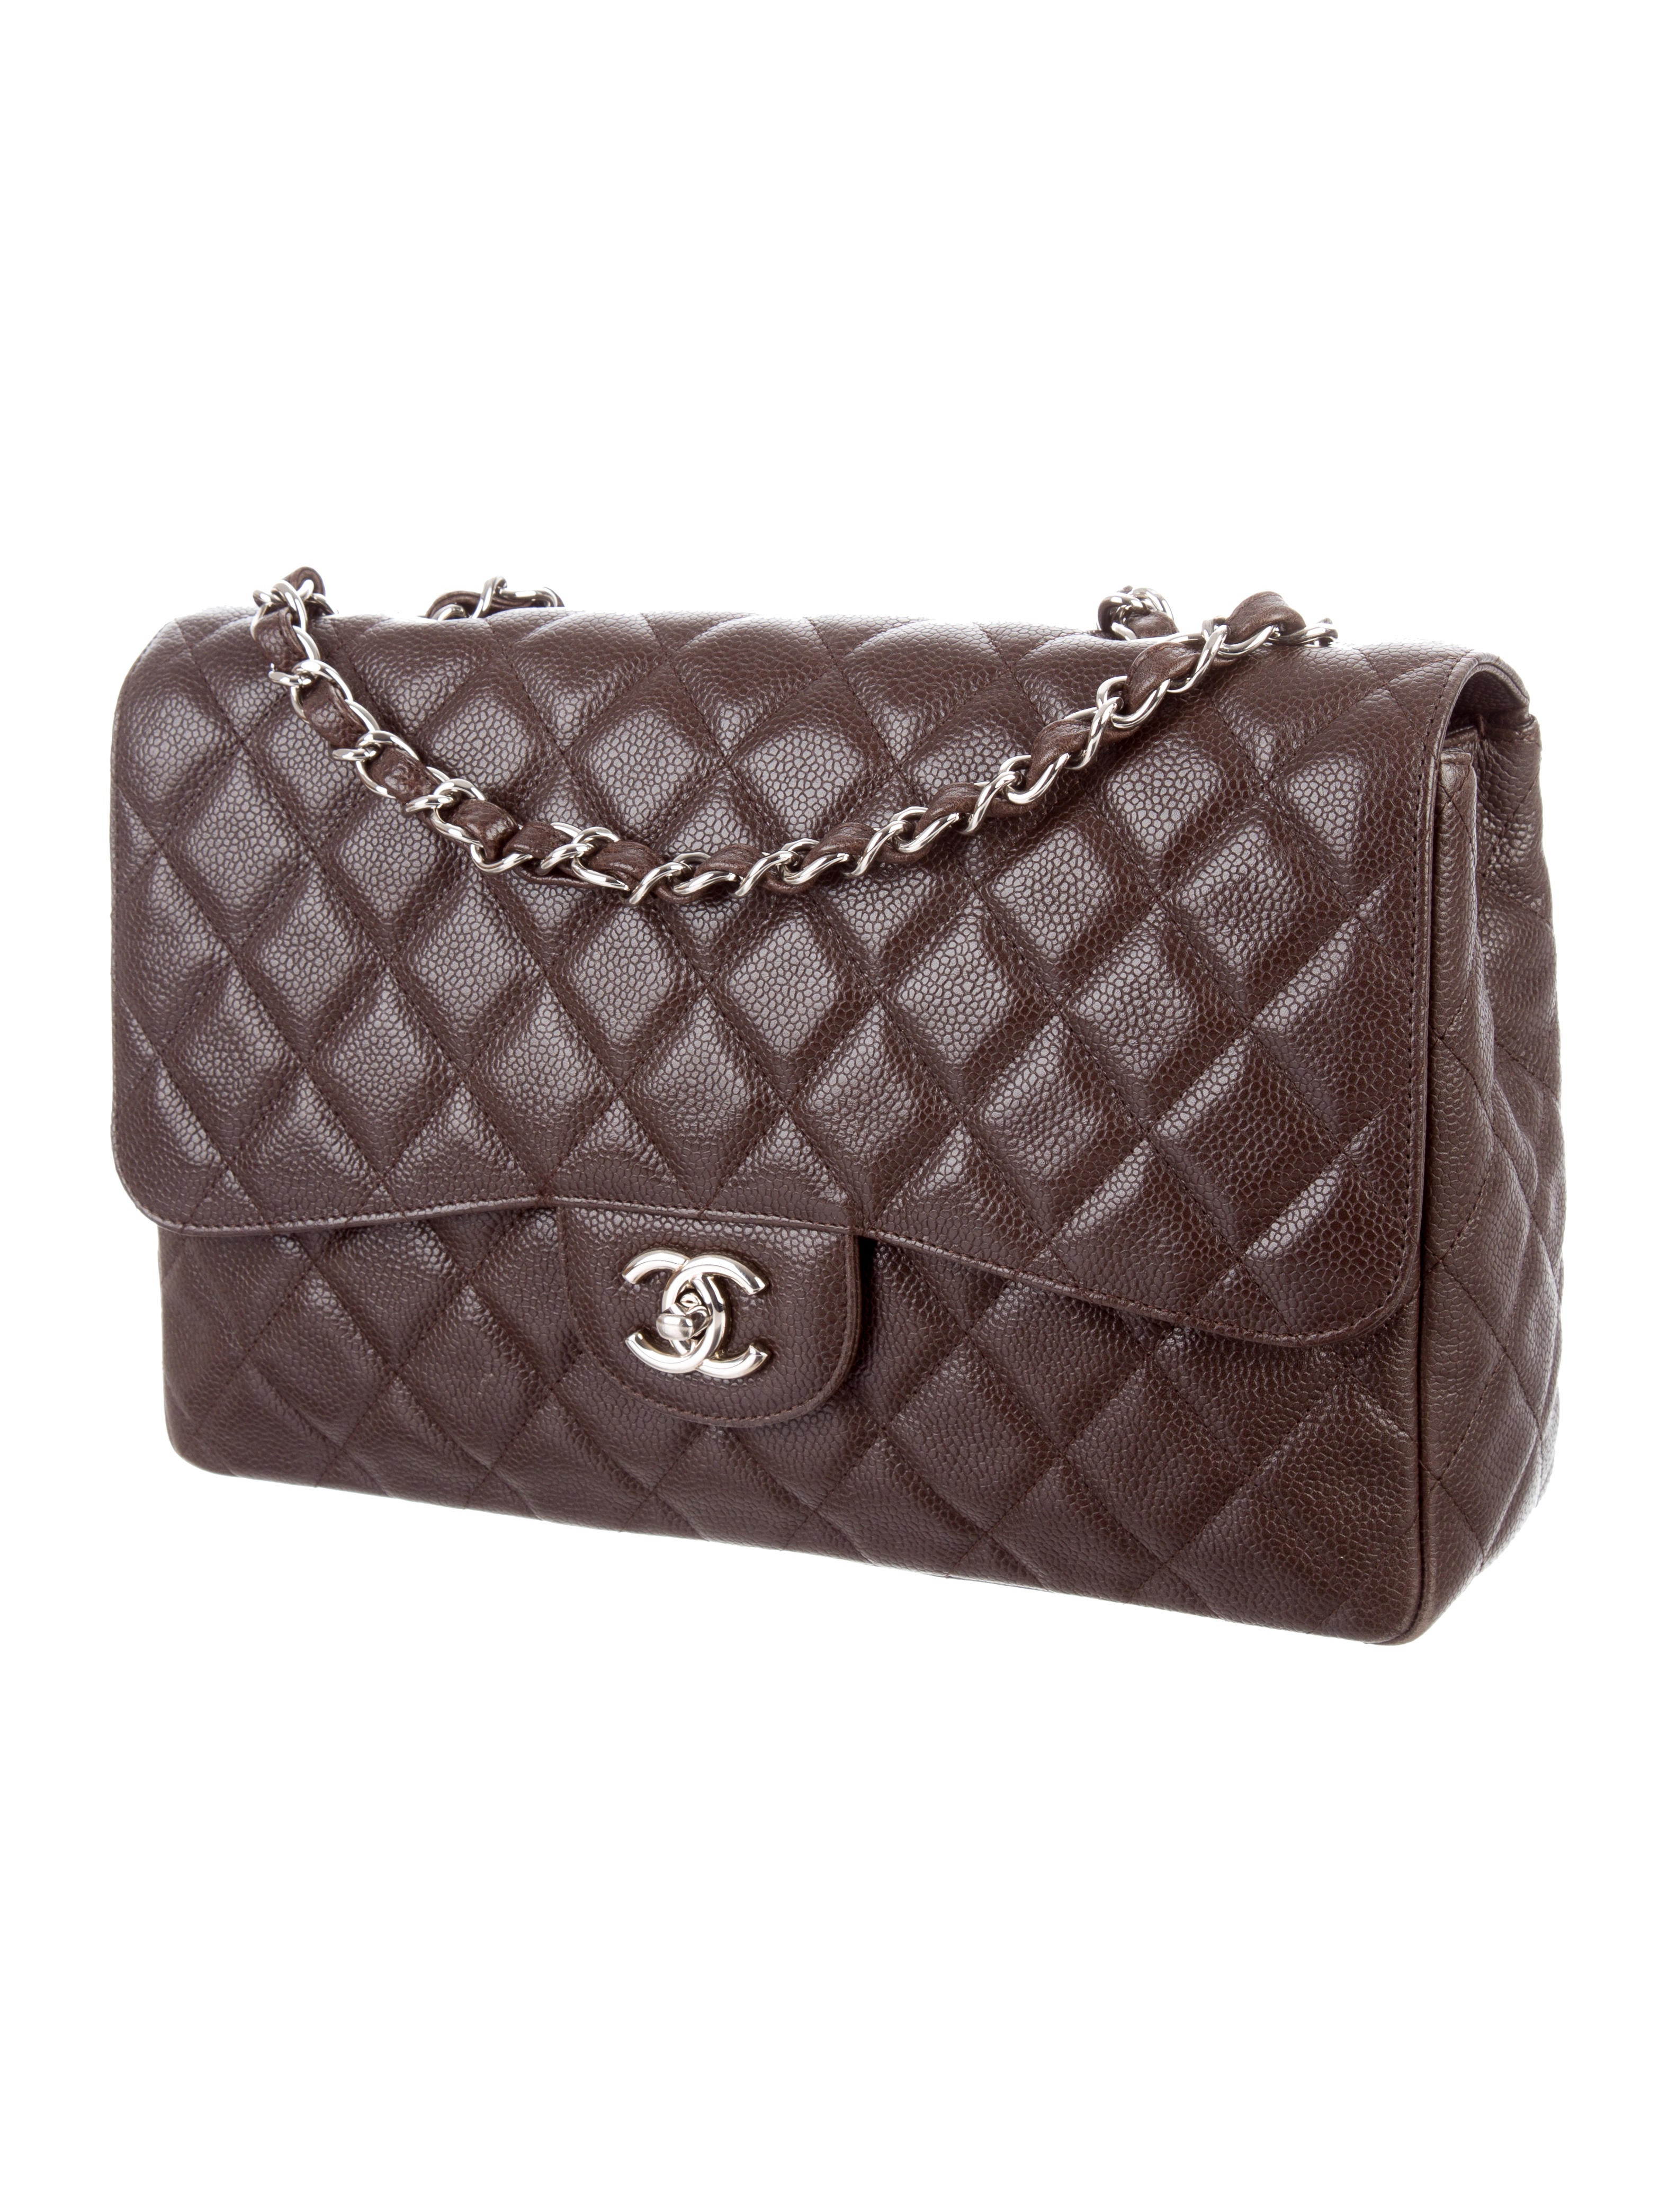 21a98050c99c Chanel Single Flap Bag Jumbo | Stanford Center for Opportunity ...